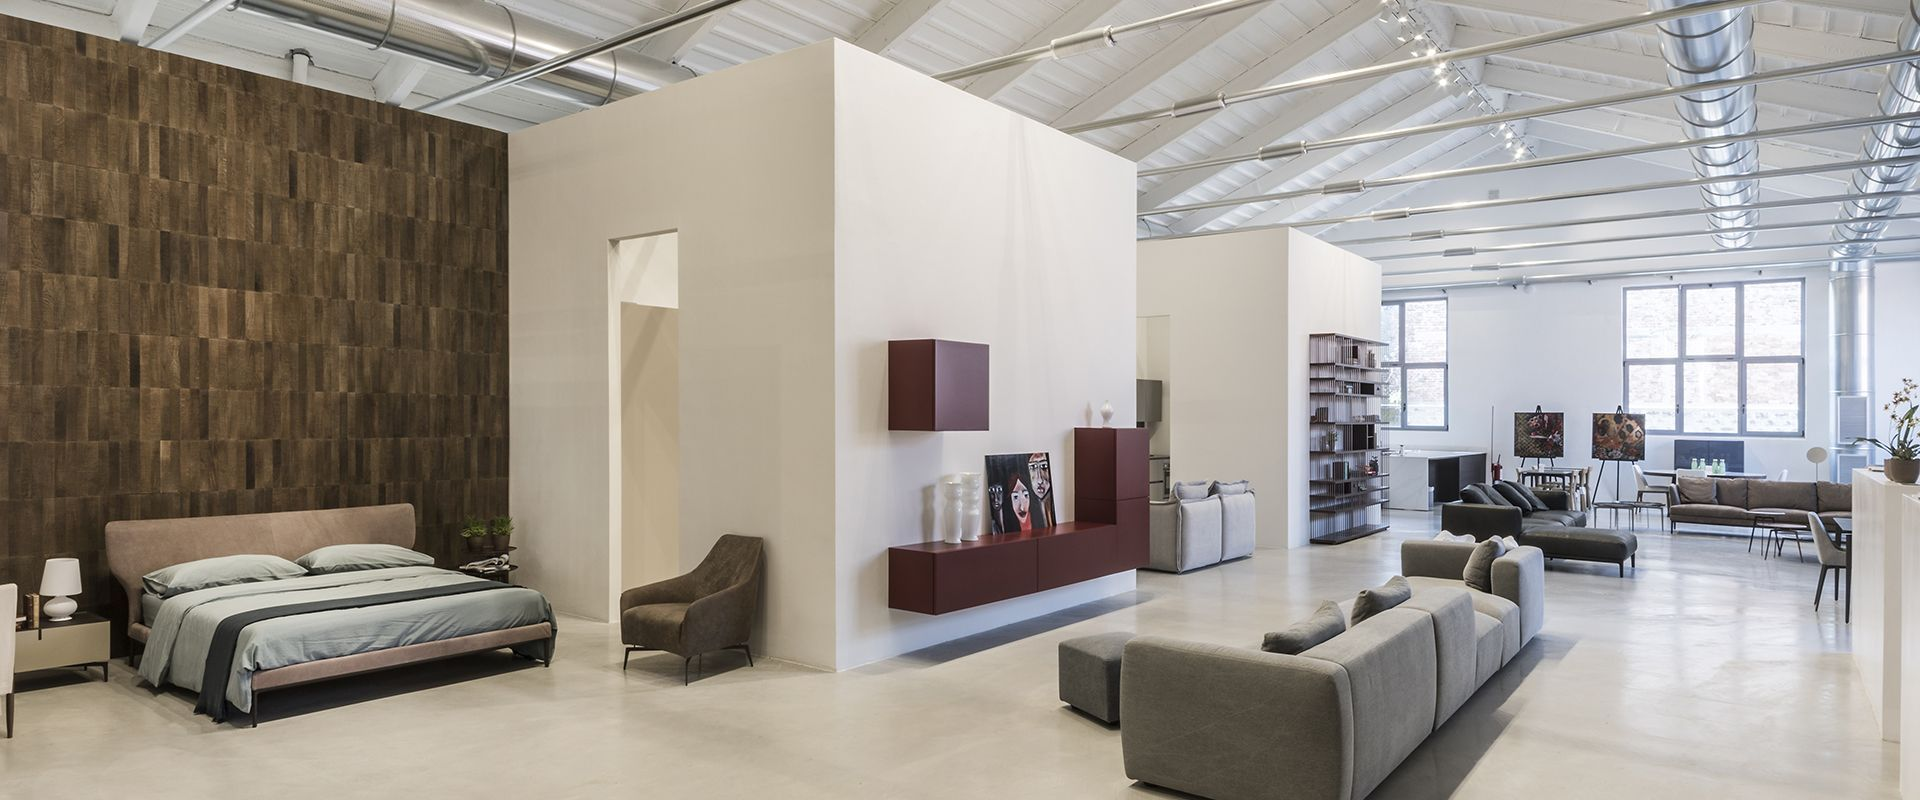 A shared showroom in Milan: R10 - Design Sharing Space